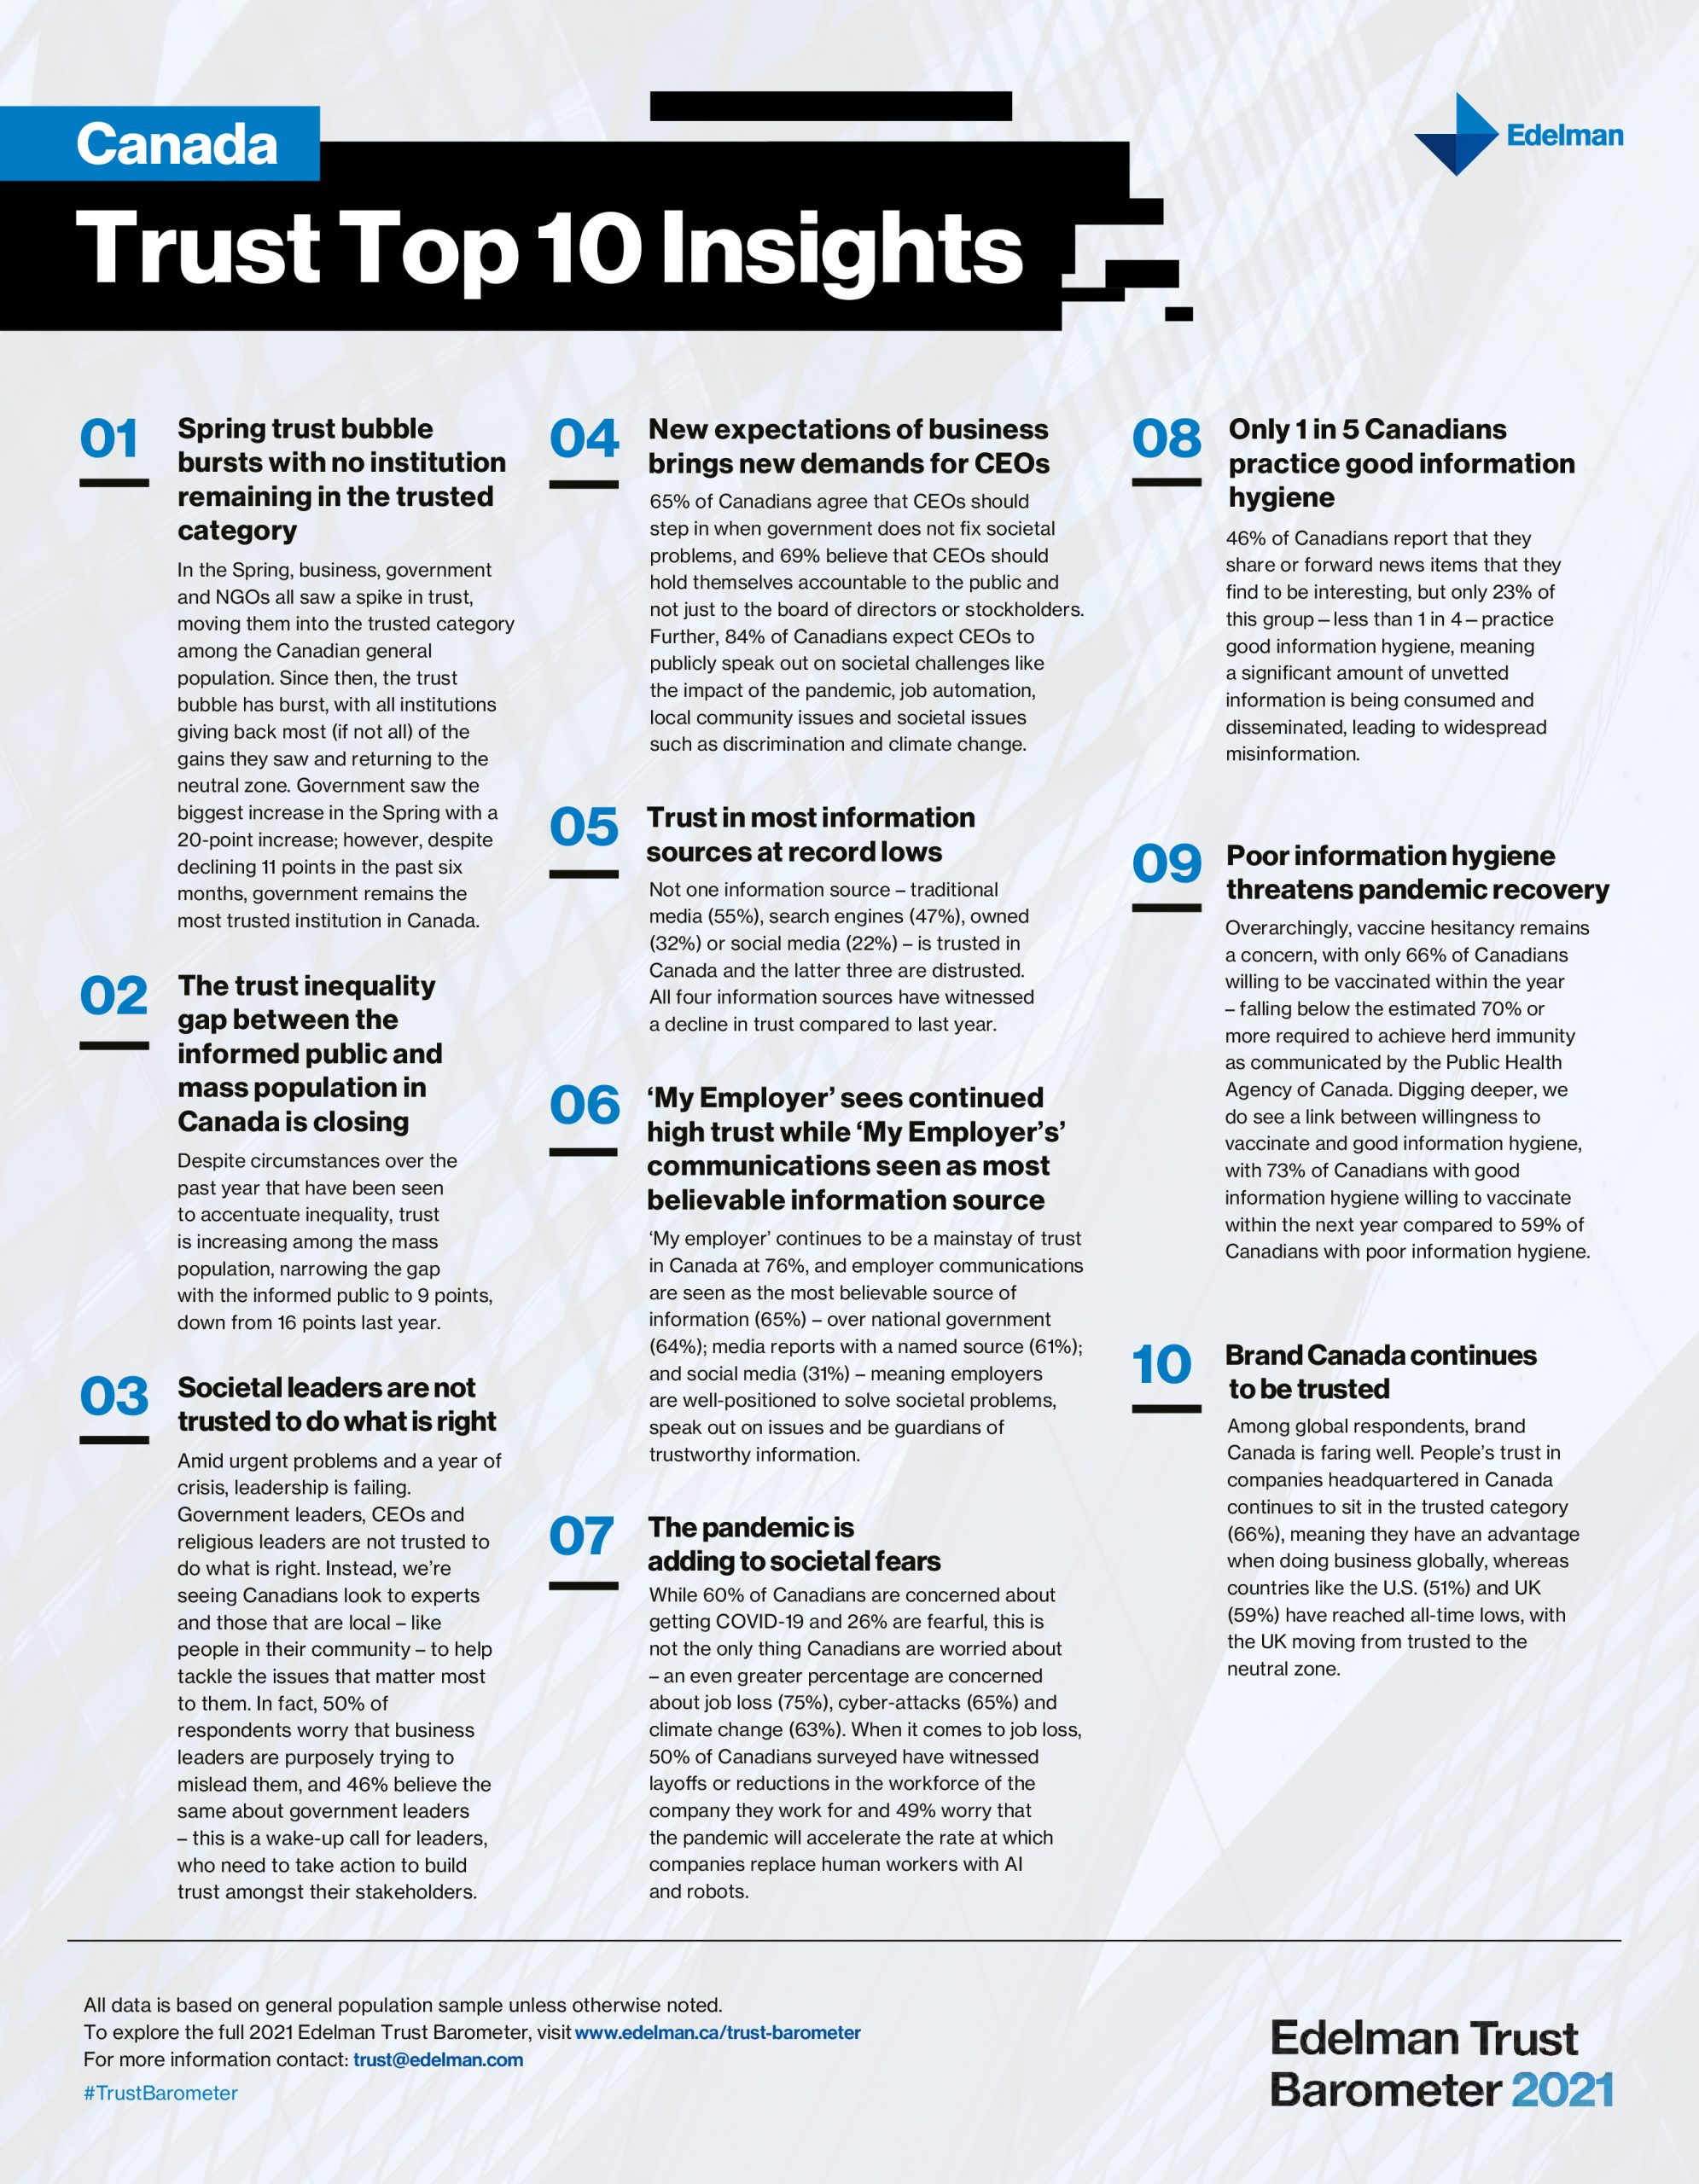 Top 10 Canadian Trust Insights